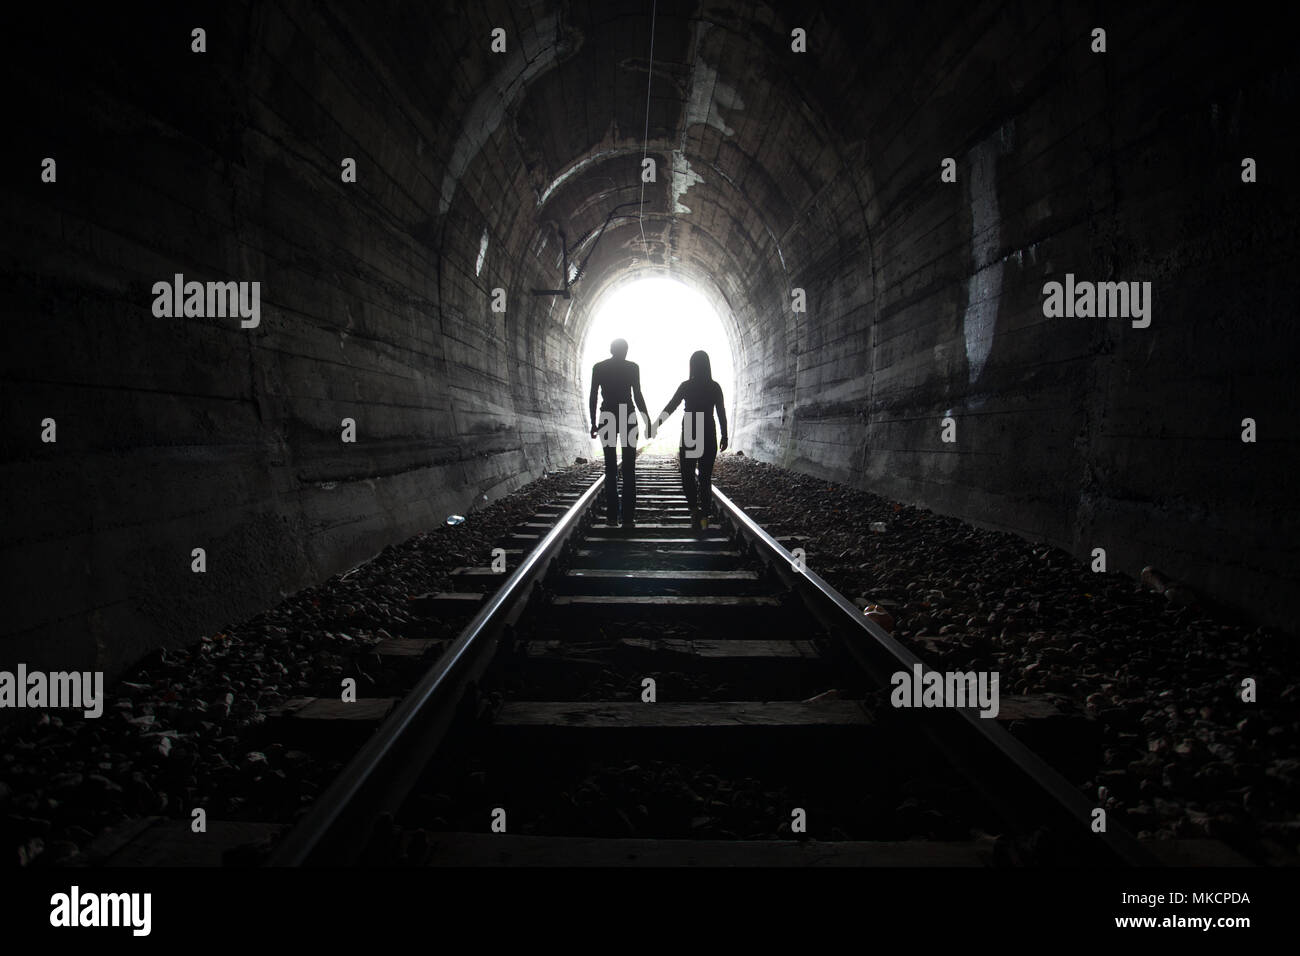 Couple walking hand in hand along the track through a railway tunnel towards the bright light at the other end, they appear as silhouettes against the - Stock Image